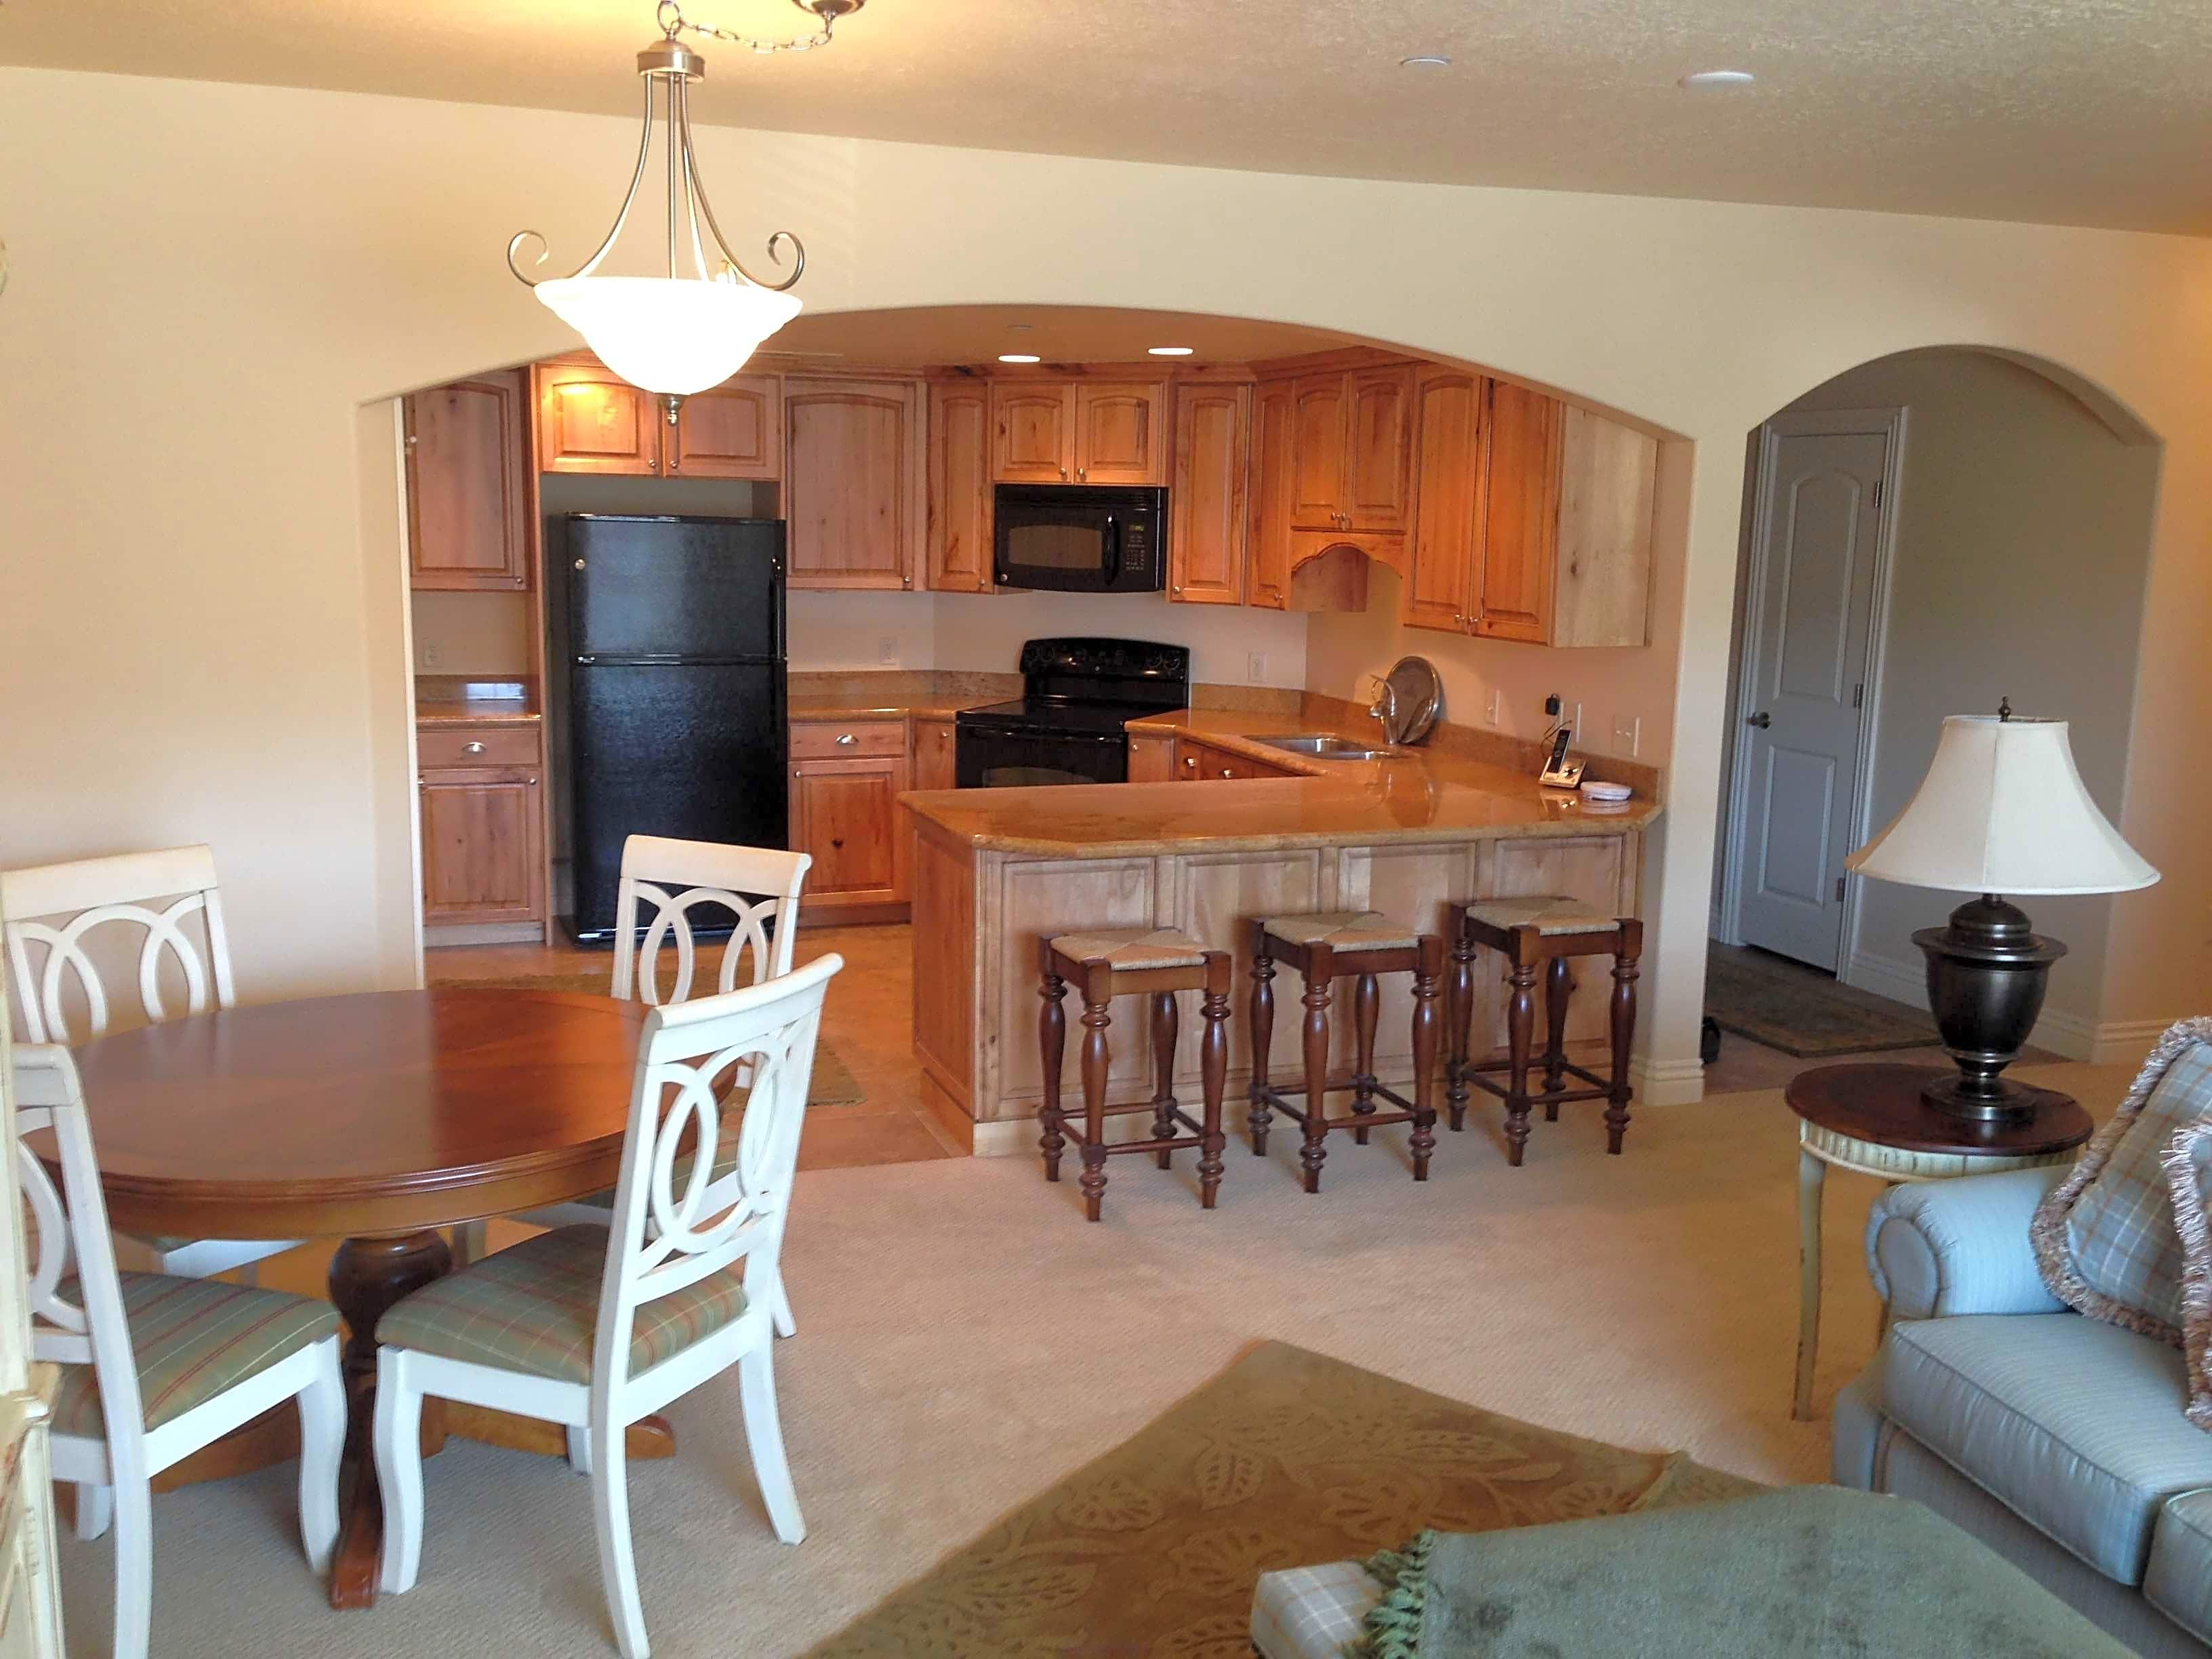 Condo for Rent in North Salt Lake